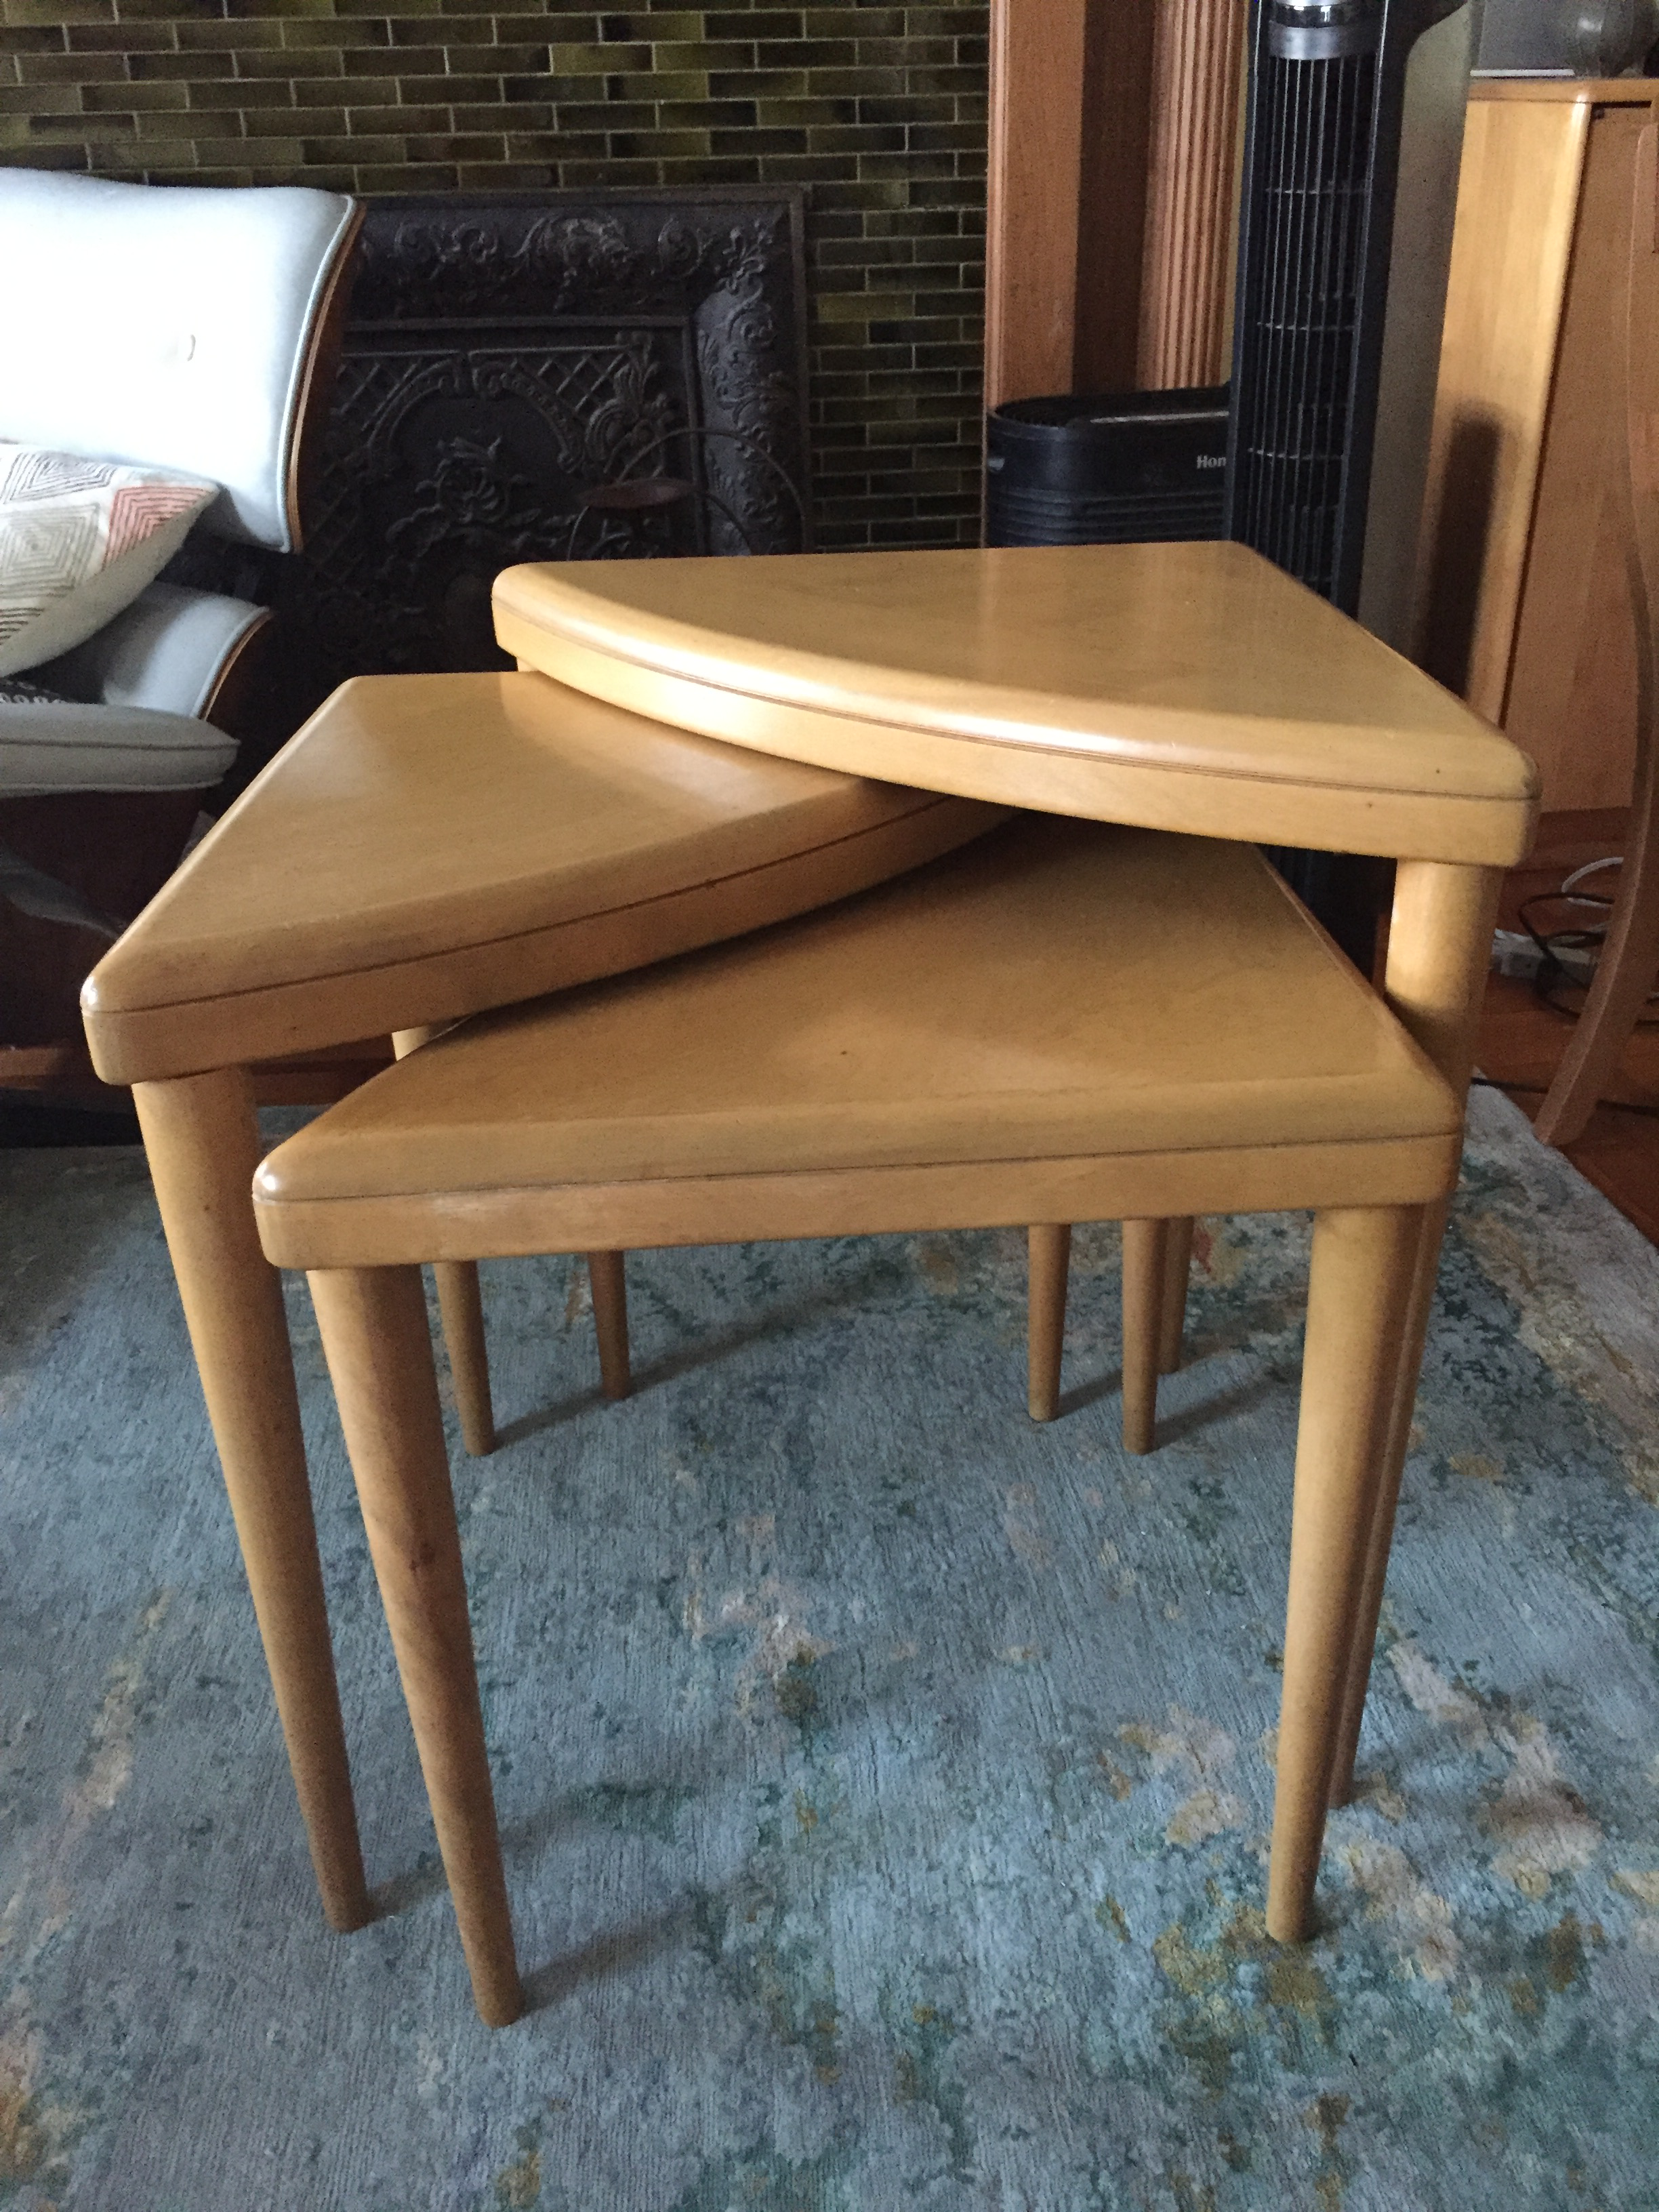 Heywood Wakefield Triangle Nesting Tables   Set Of 3   Image 2 Of 5